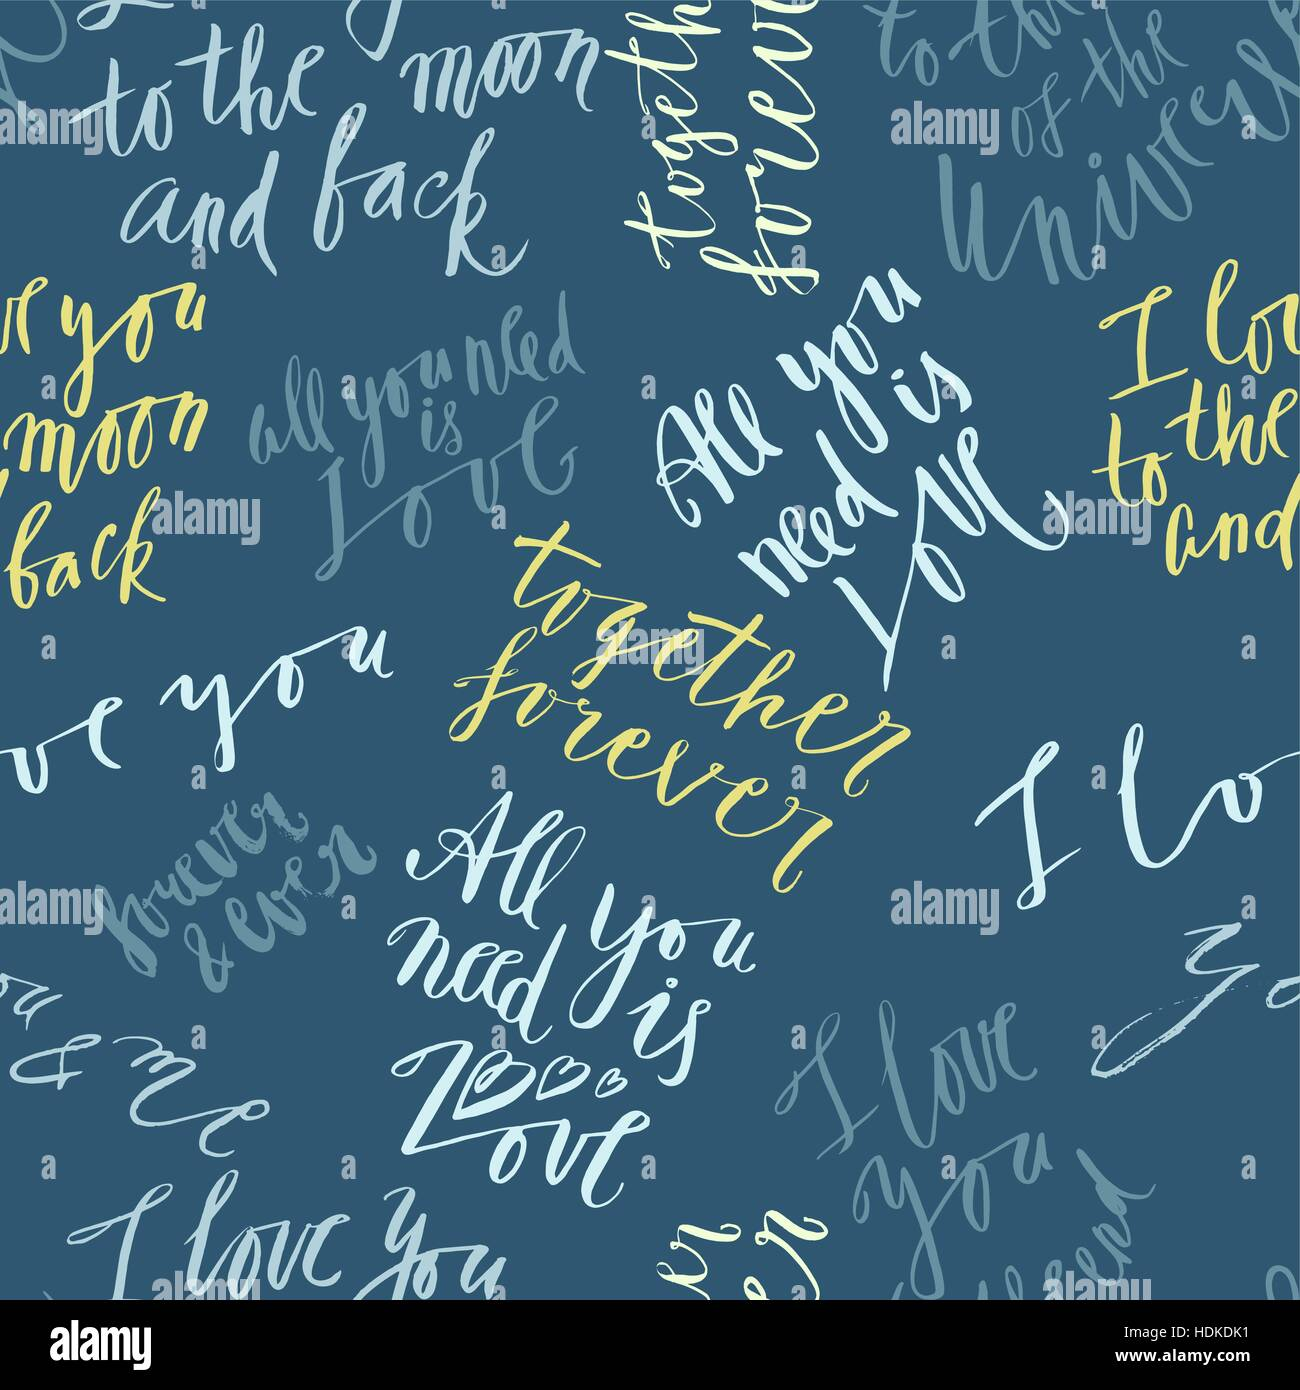 Quotes About Love Stock Vector Images Alamy